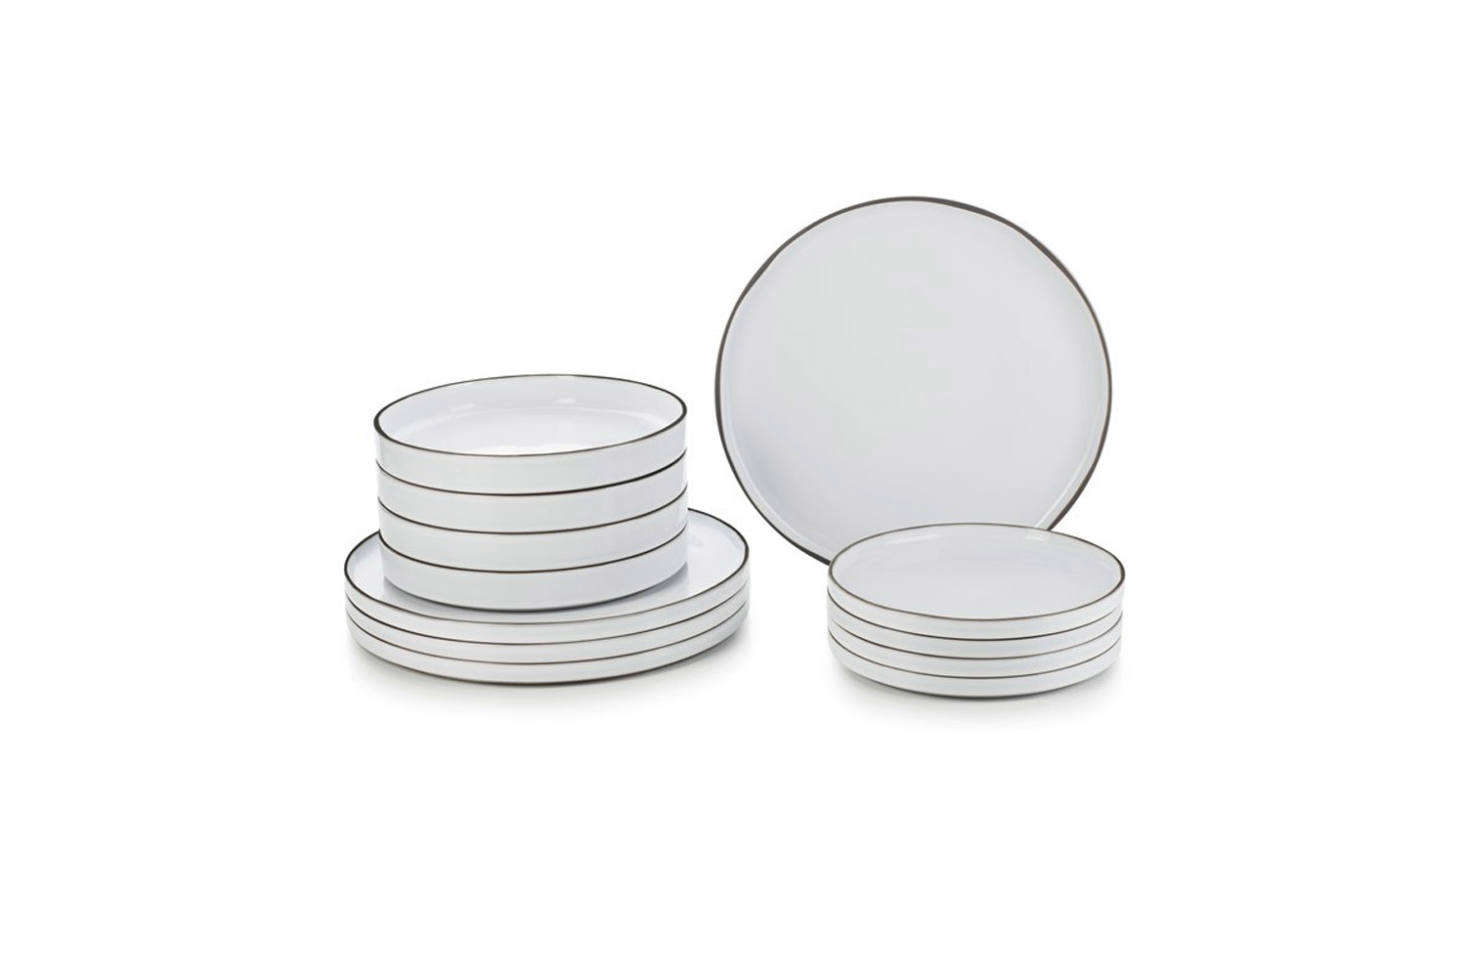 A new line from Revol called Caractereis designed by French architect Noé Duchaufour-Lawrance. The set is inspired by daily life in the Drôme countryside with an unglazed rim (making the plates more resistant to shock) and stackable design. The White Cumulus Dinnerware Set of 12 Pieces is $500 at Revol.